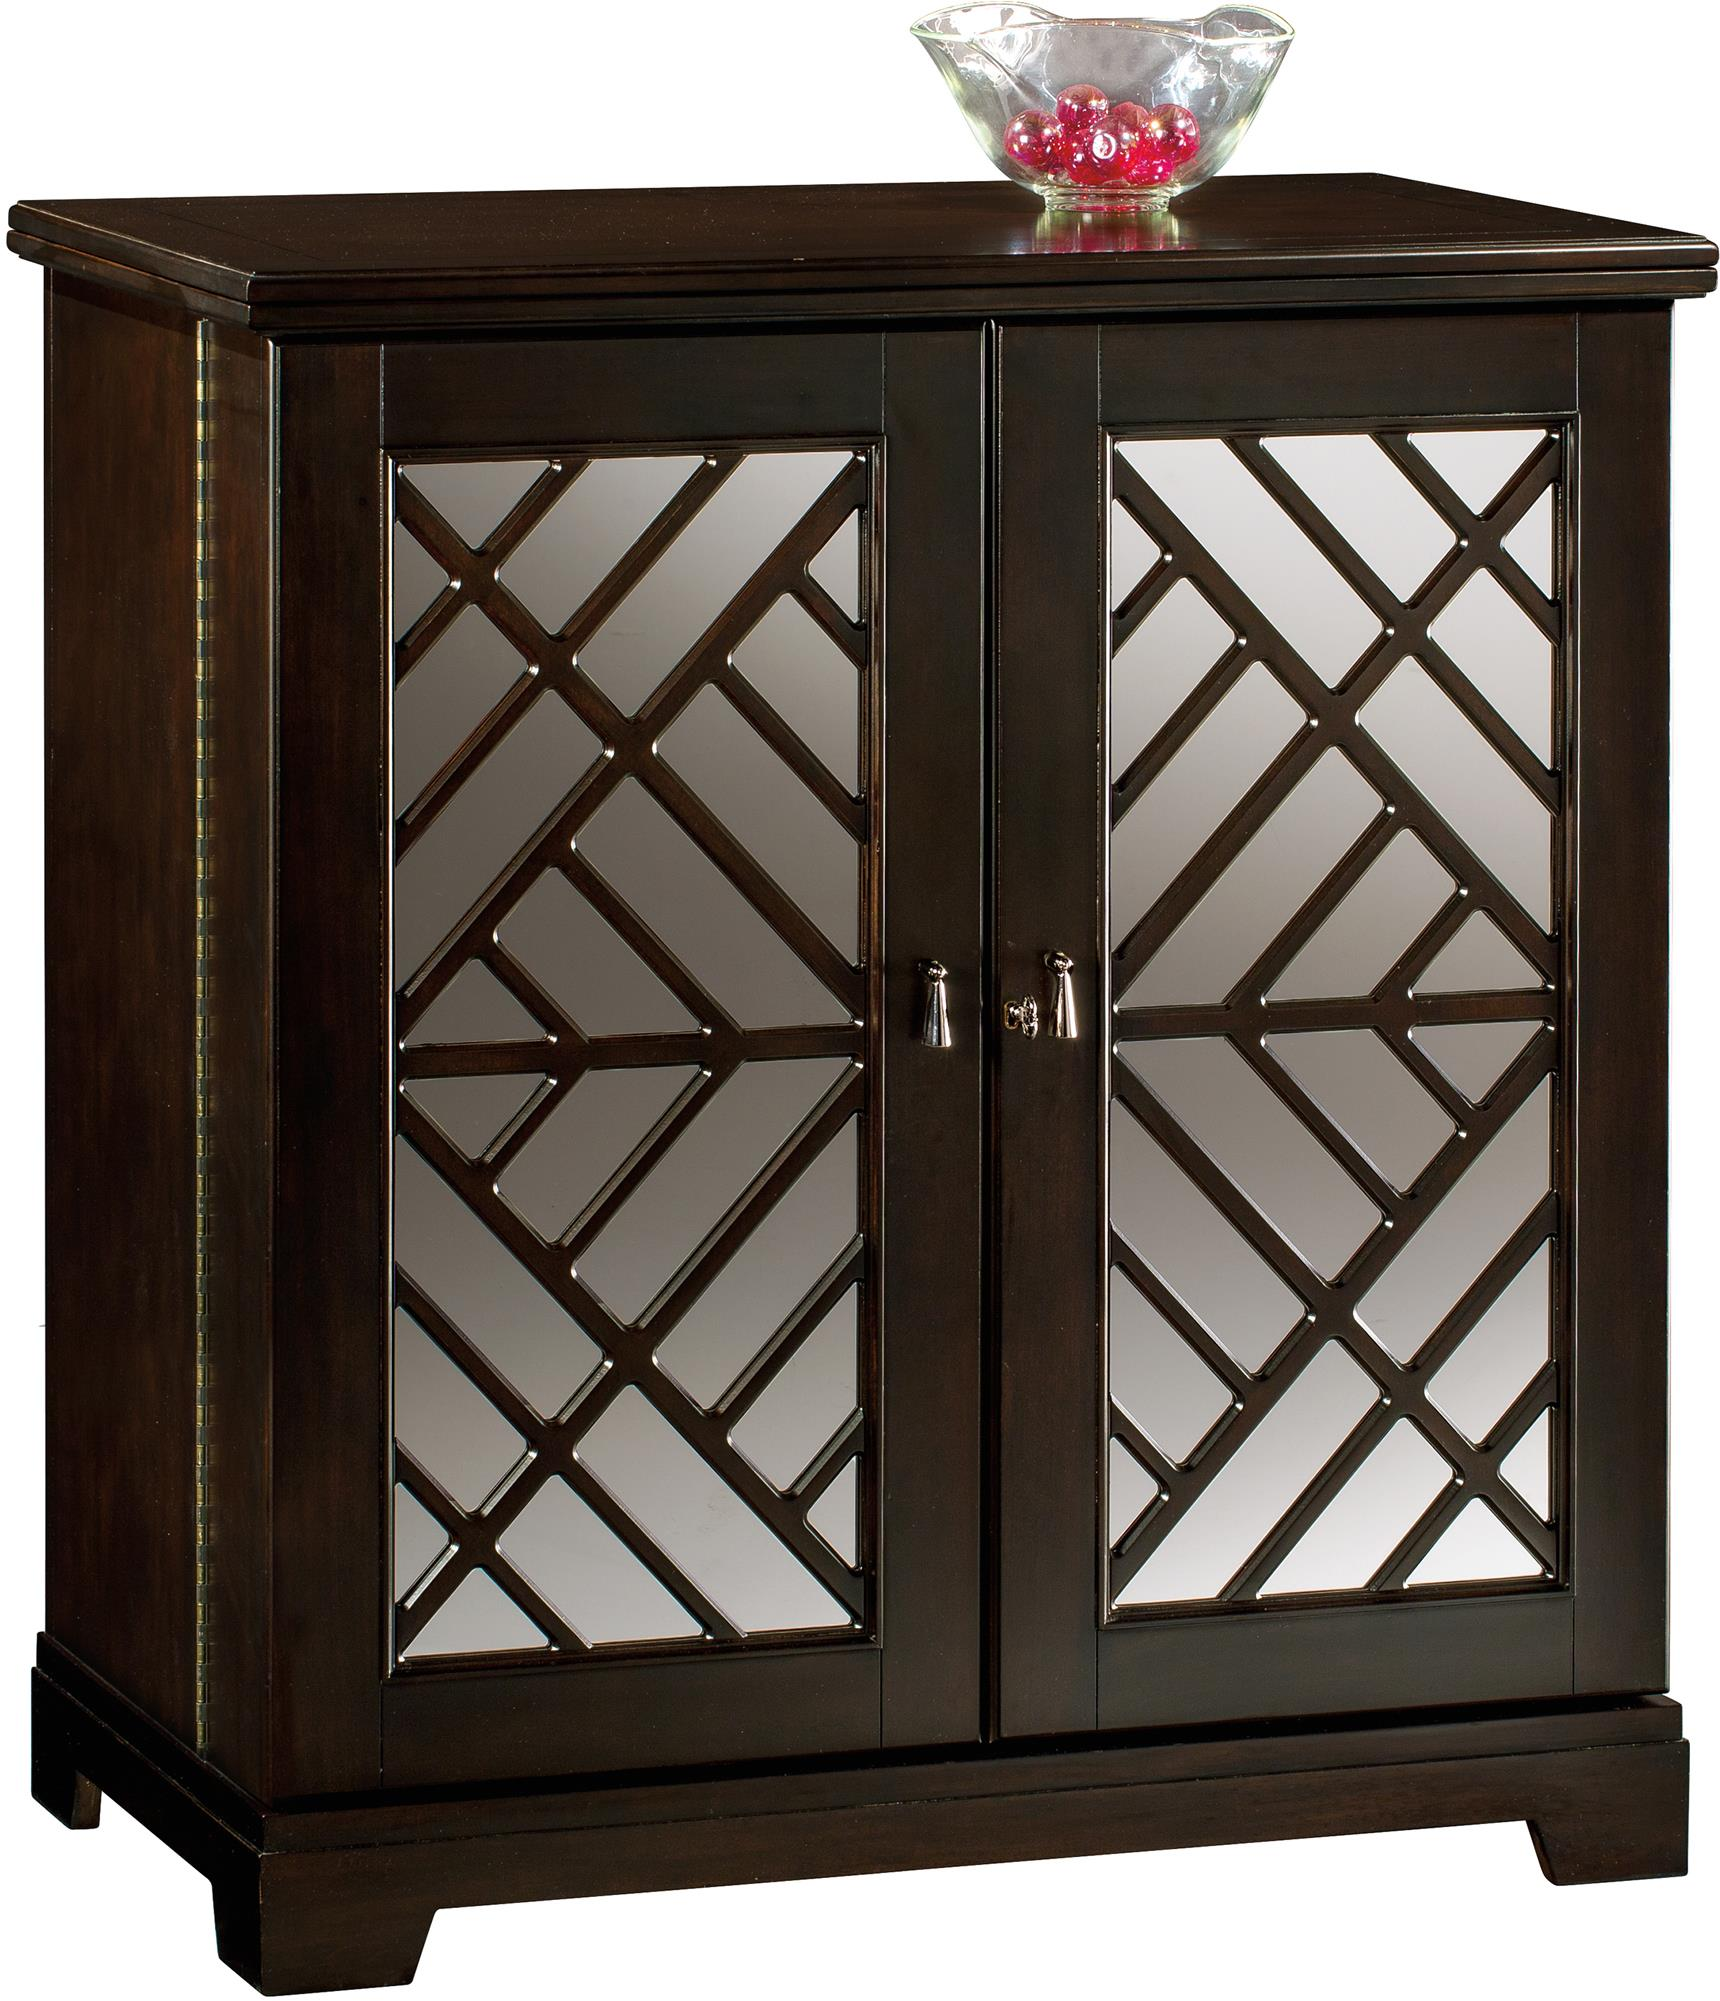 Howard Miller Wine & Bar Furnishings Barolo Console Wine & Bar Cabinet - Item Number: 695-150